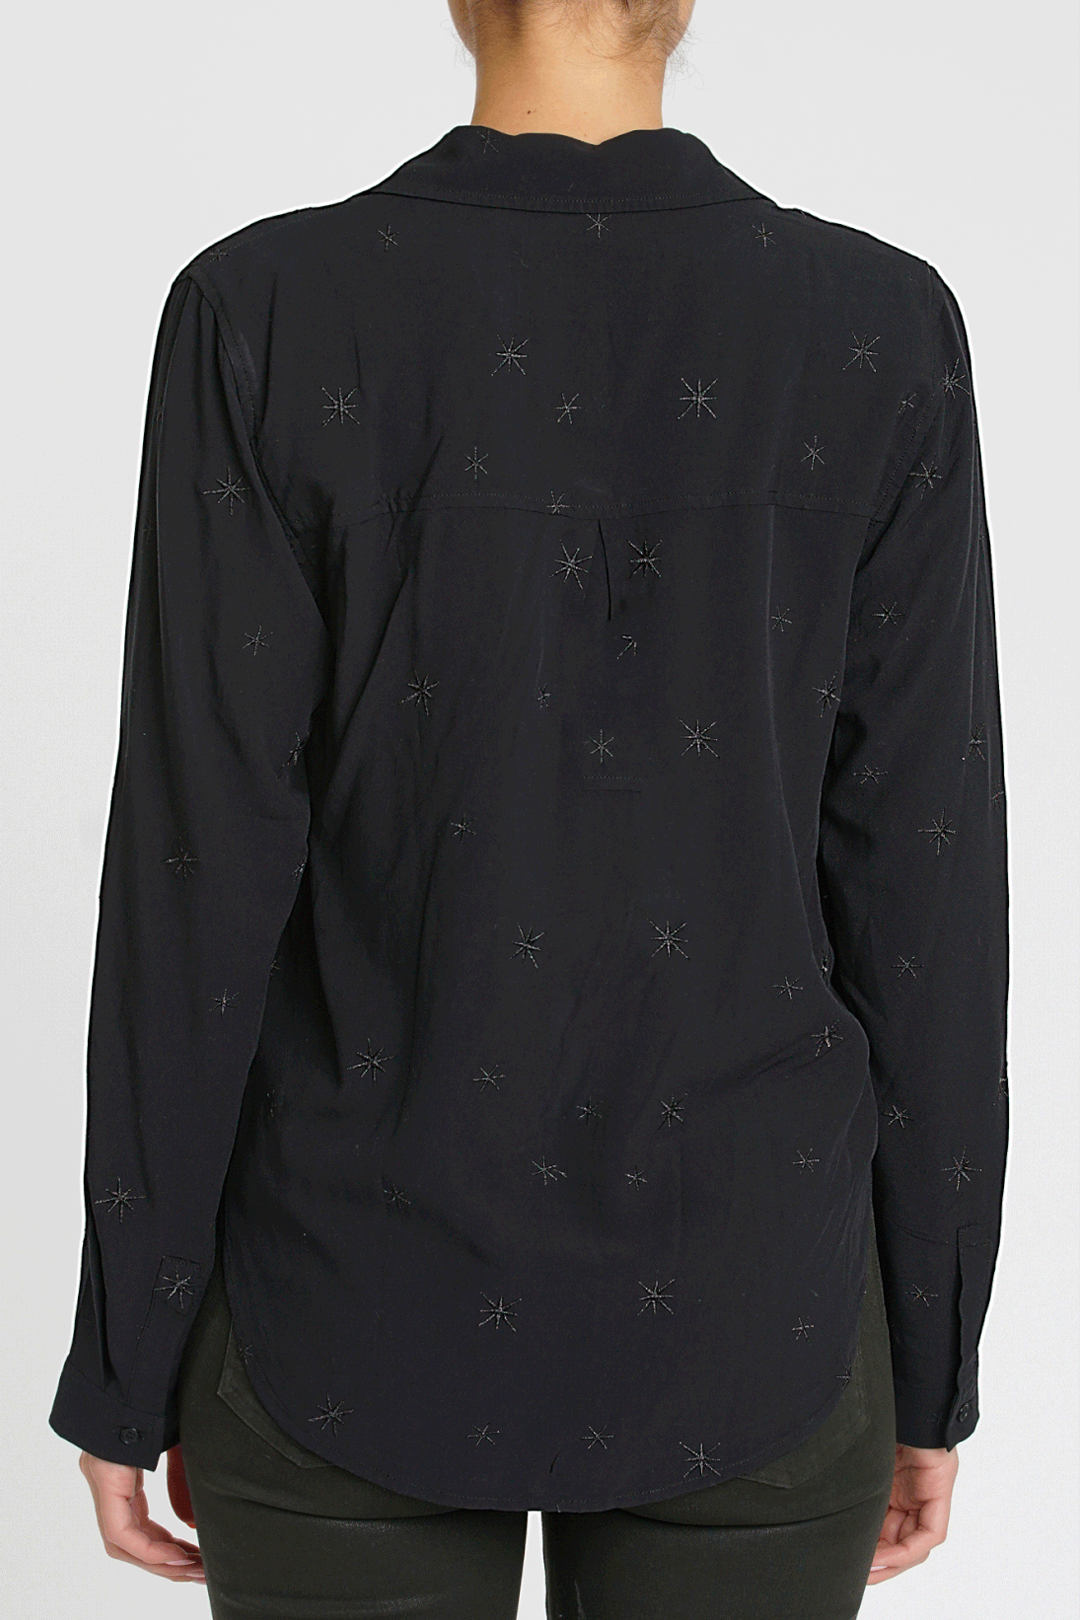 Evie Star Embroidery Shirt - Celestial Shade